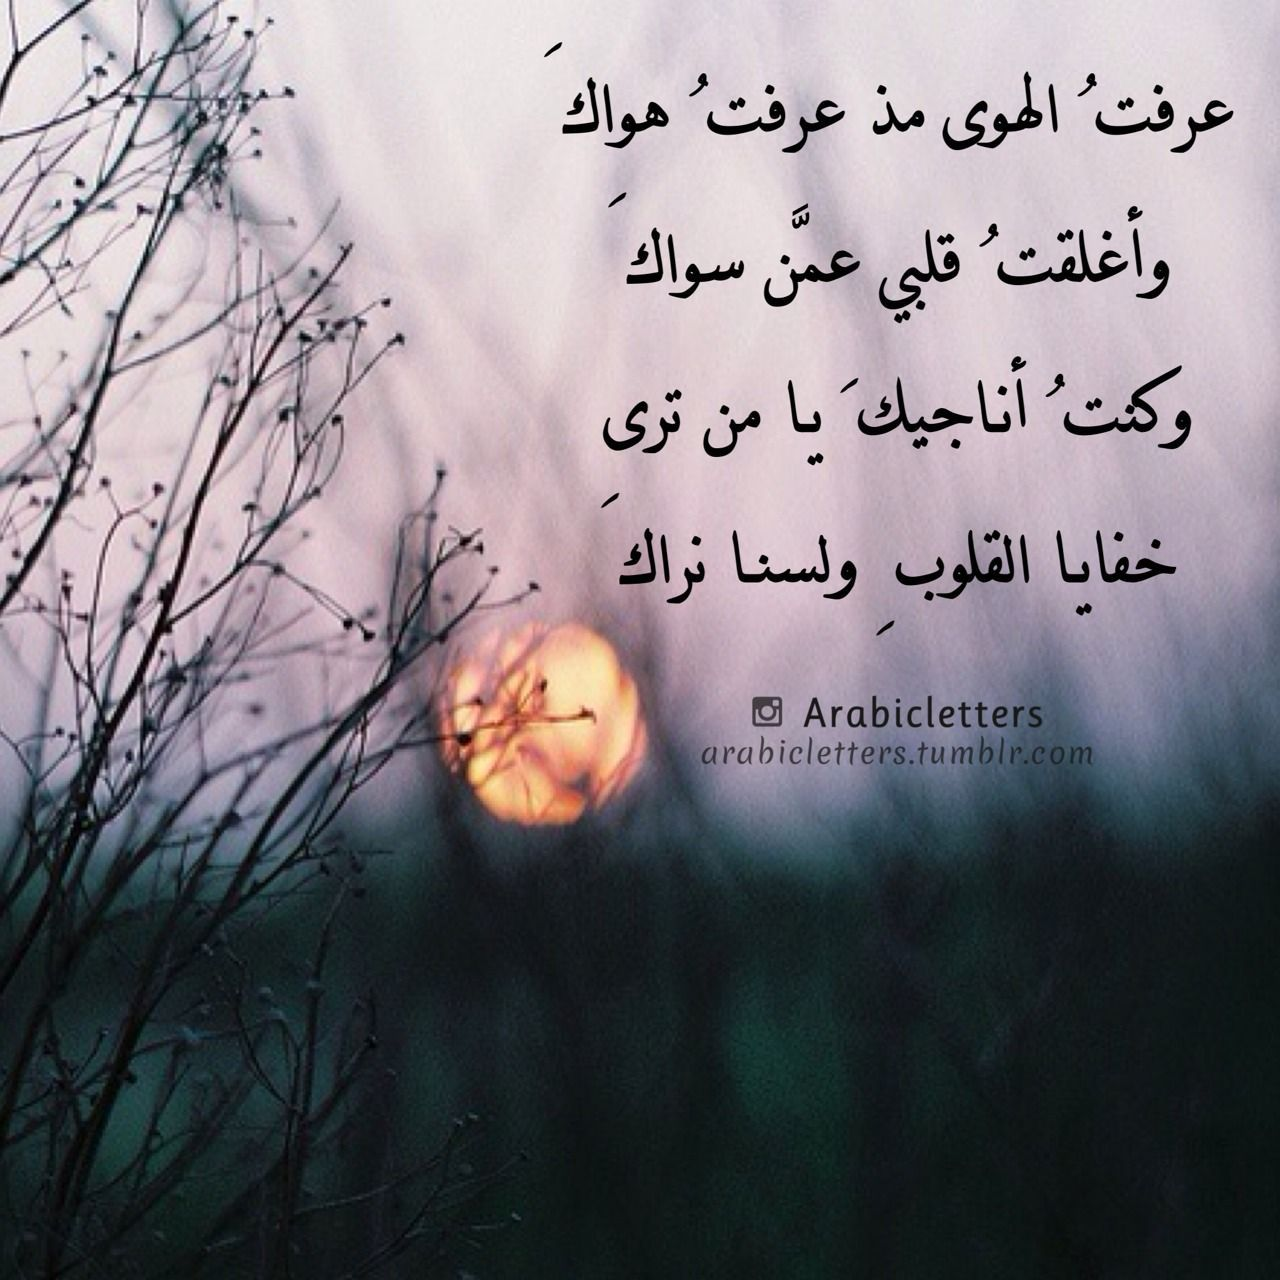 Arabic Letters الله Islamic Inspirational Quotes Cool Words Words Quotes